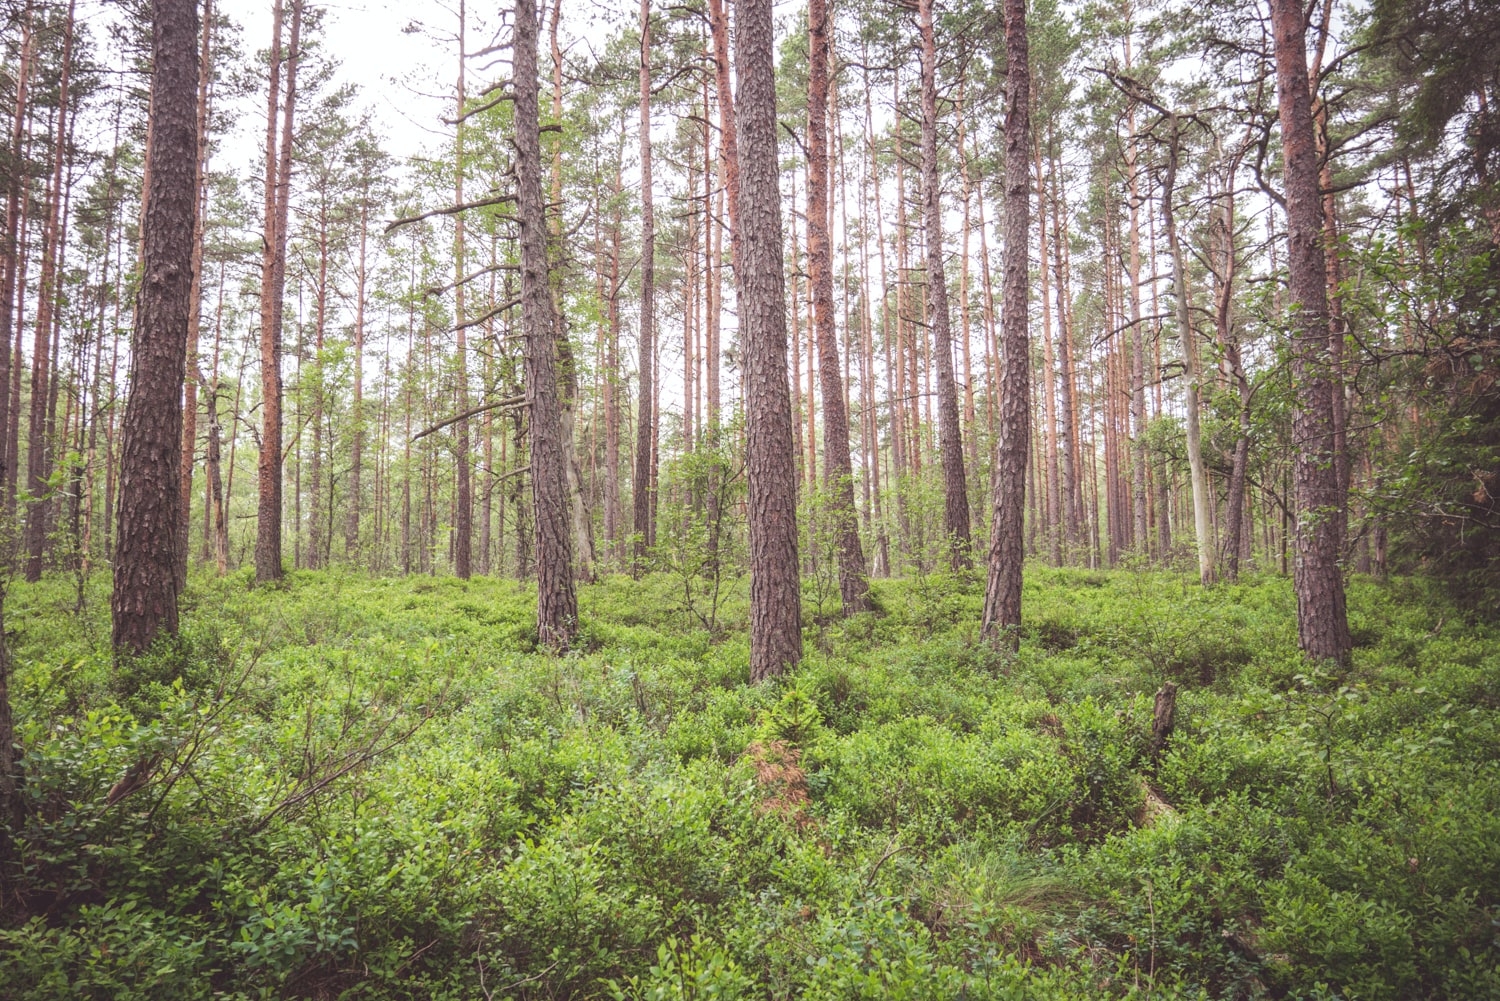 A group of coniferous trees in dense green underbrush